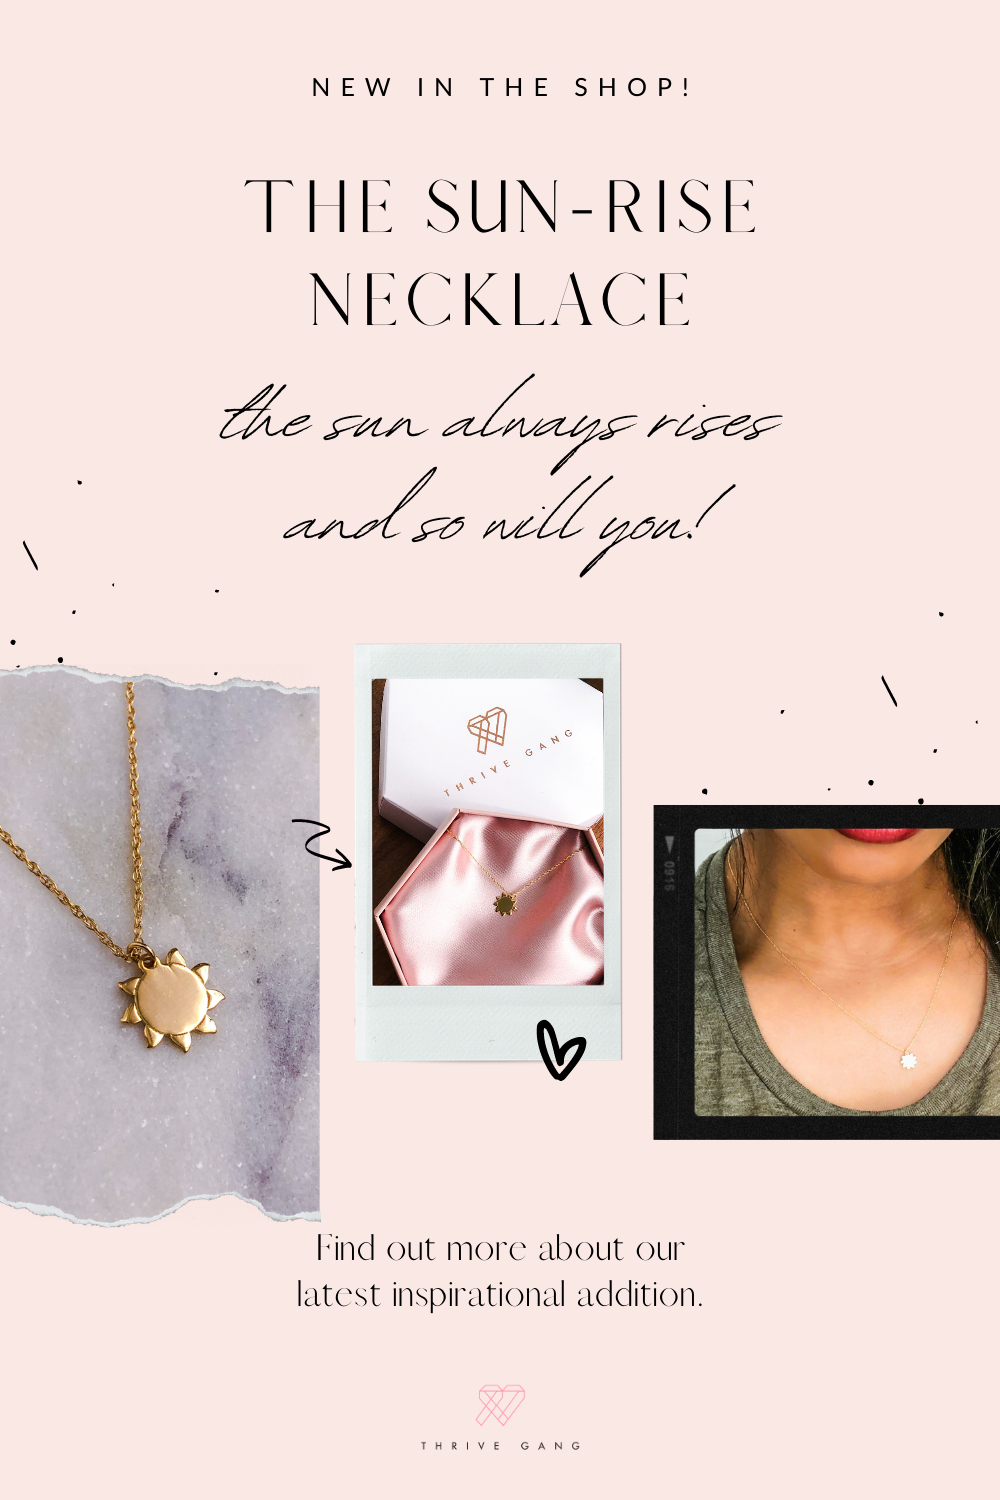 14k Solid Gold Pendant necklace. The will always rises and so will you. No matter where you are on your breast cancer journey we believe you will over come and thrive.